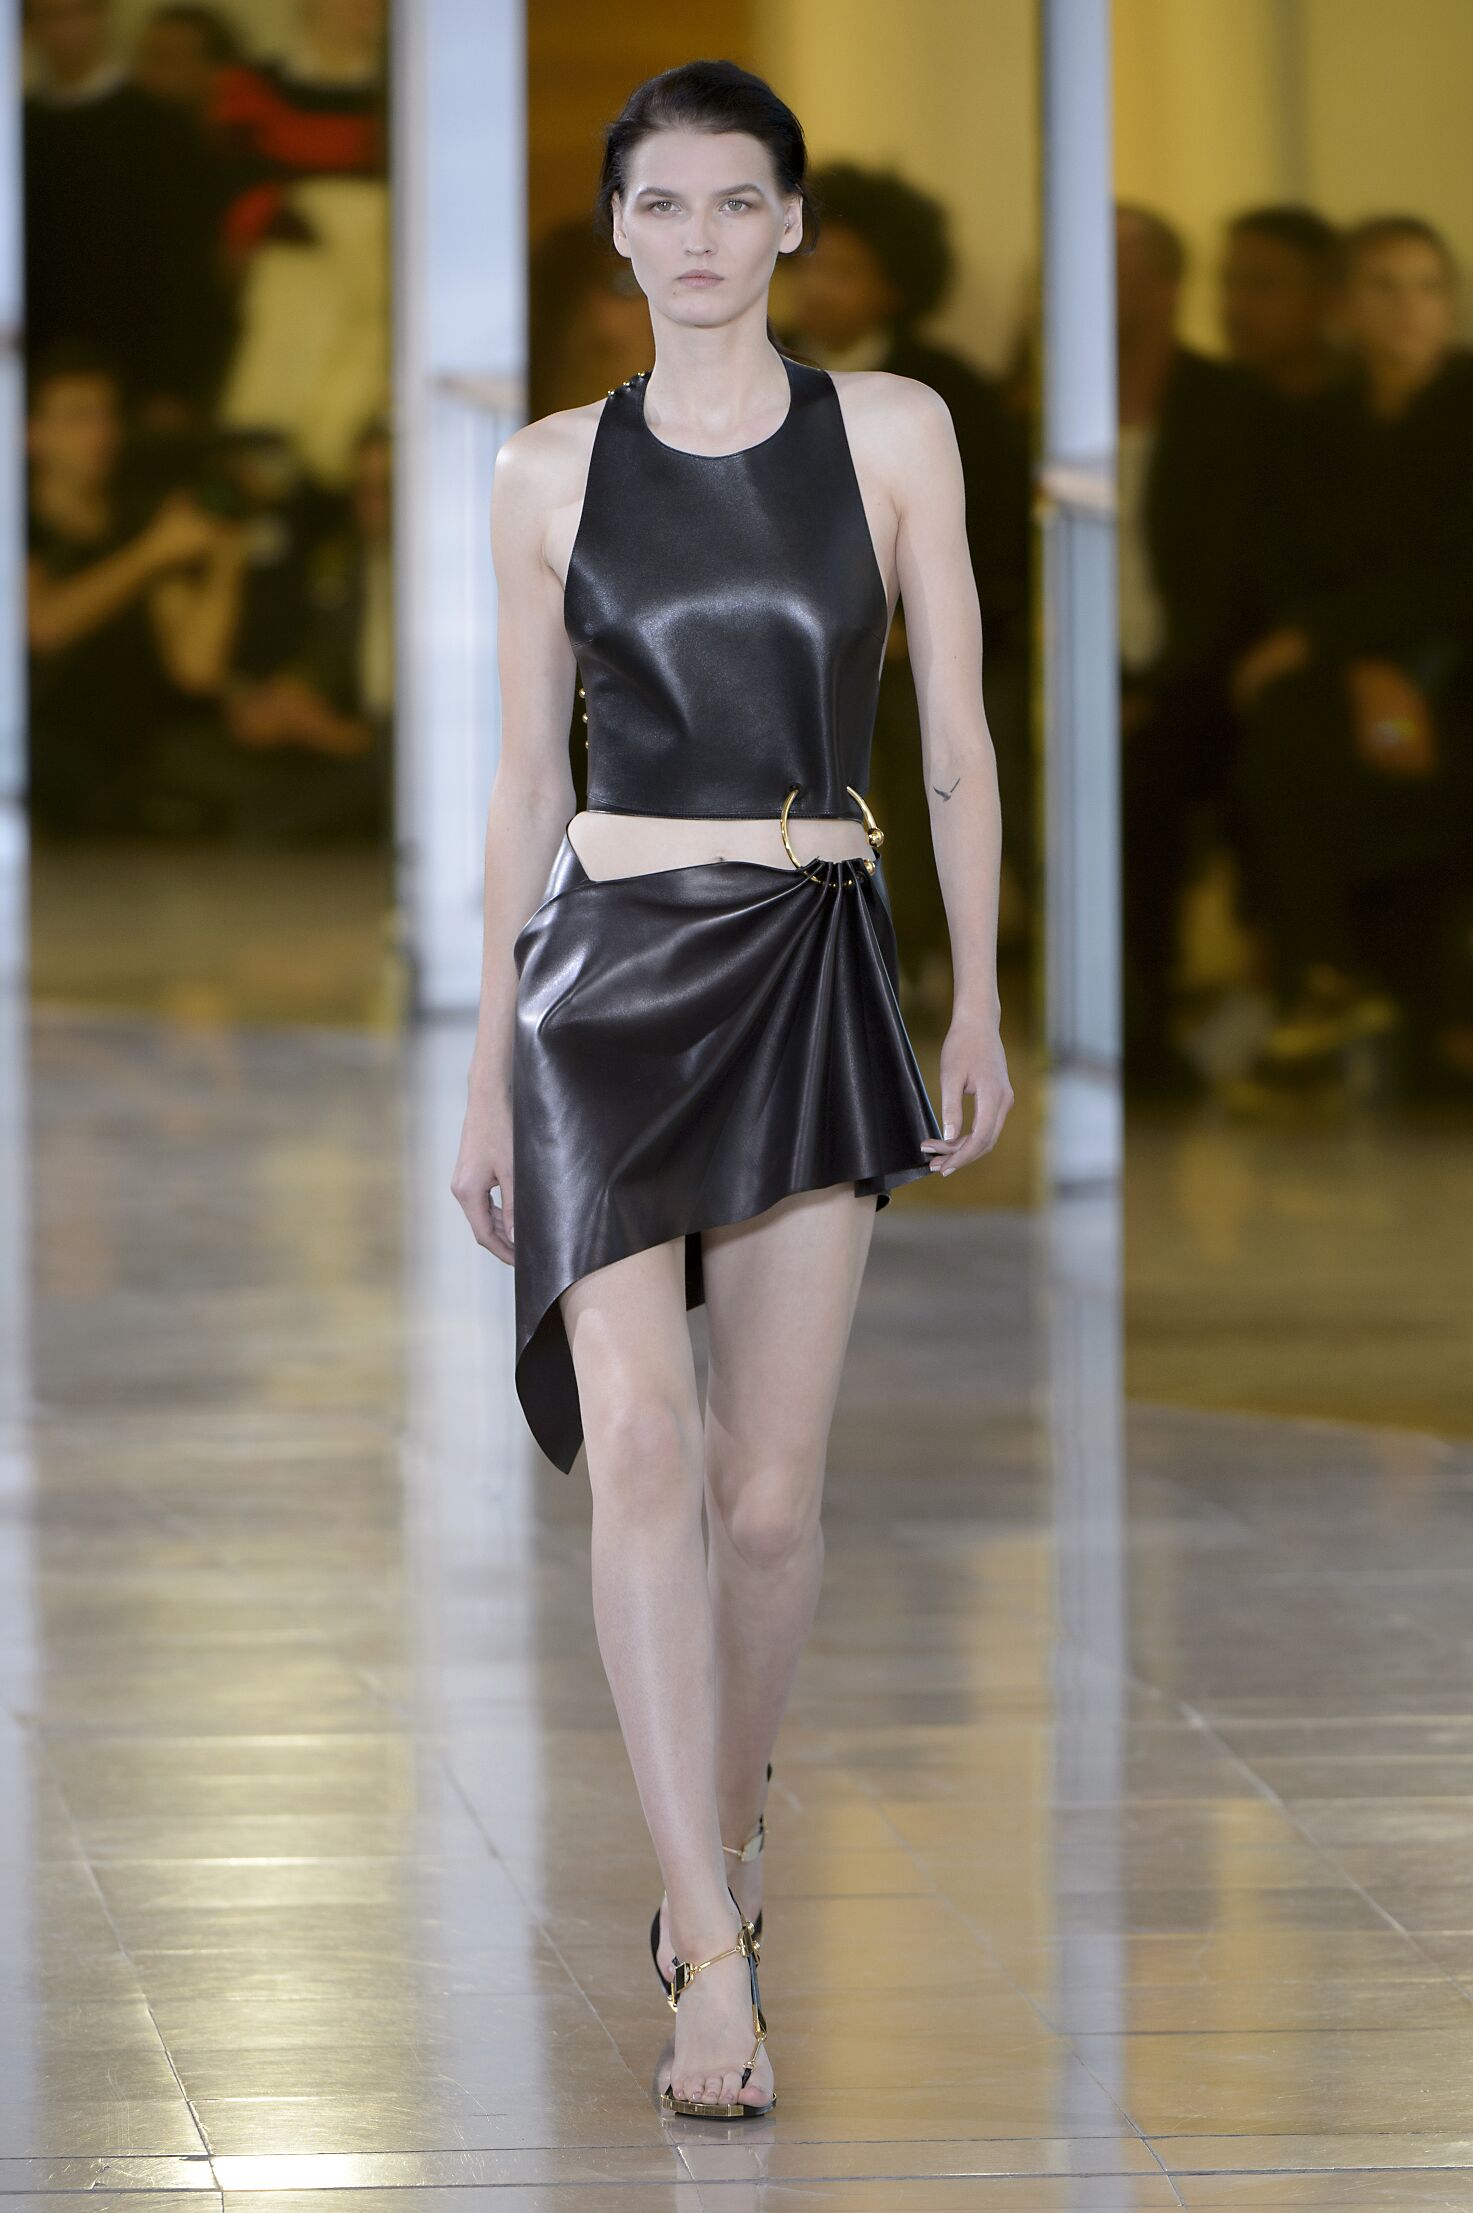 Catwalk Anthony Vaccarello Woman Fashion Show Summer 2016